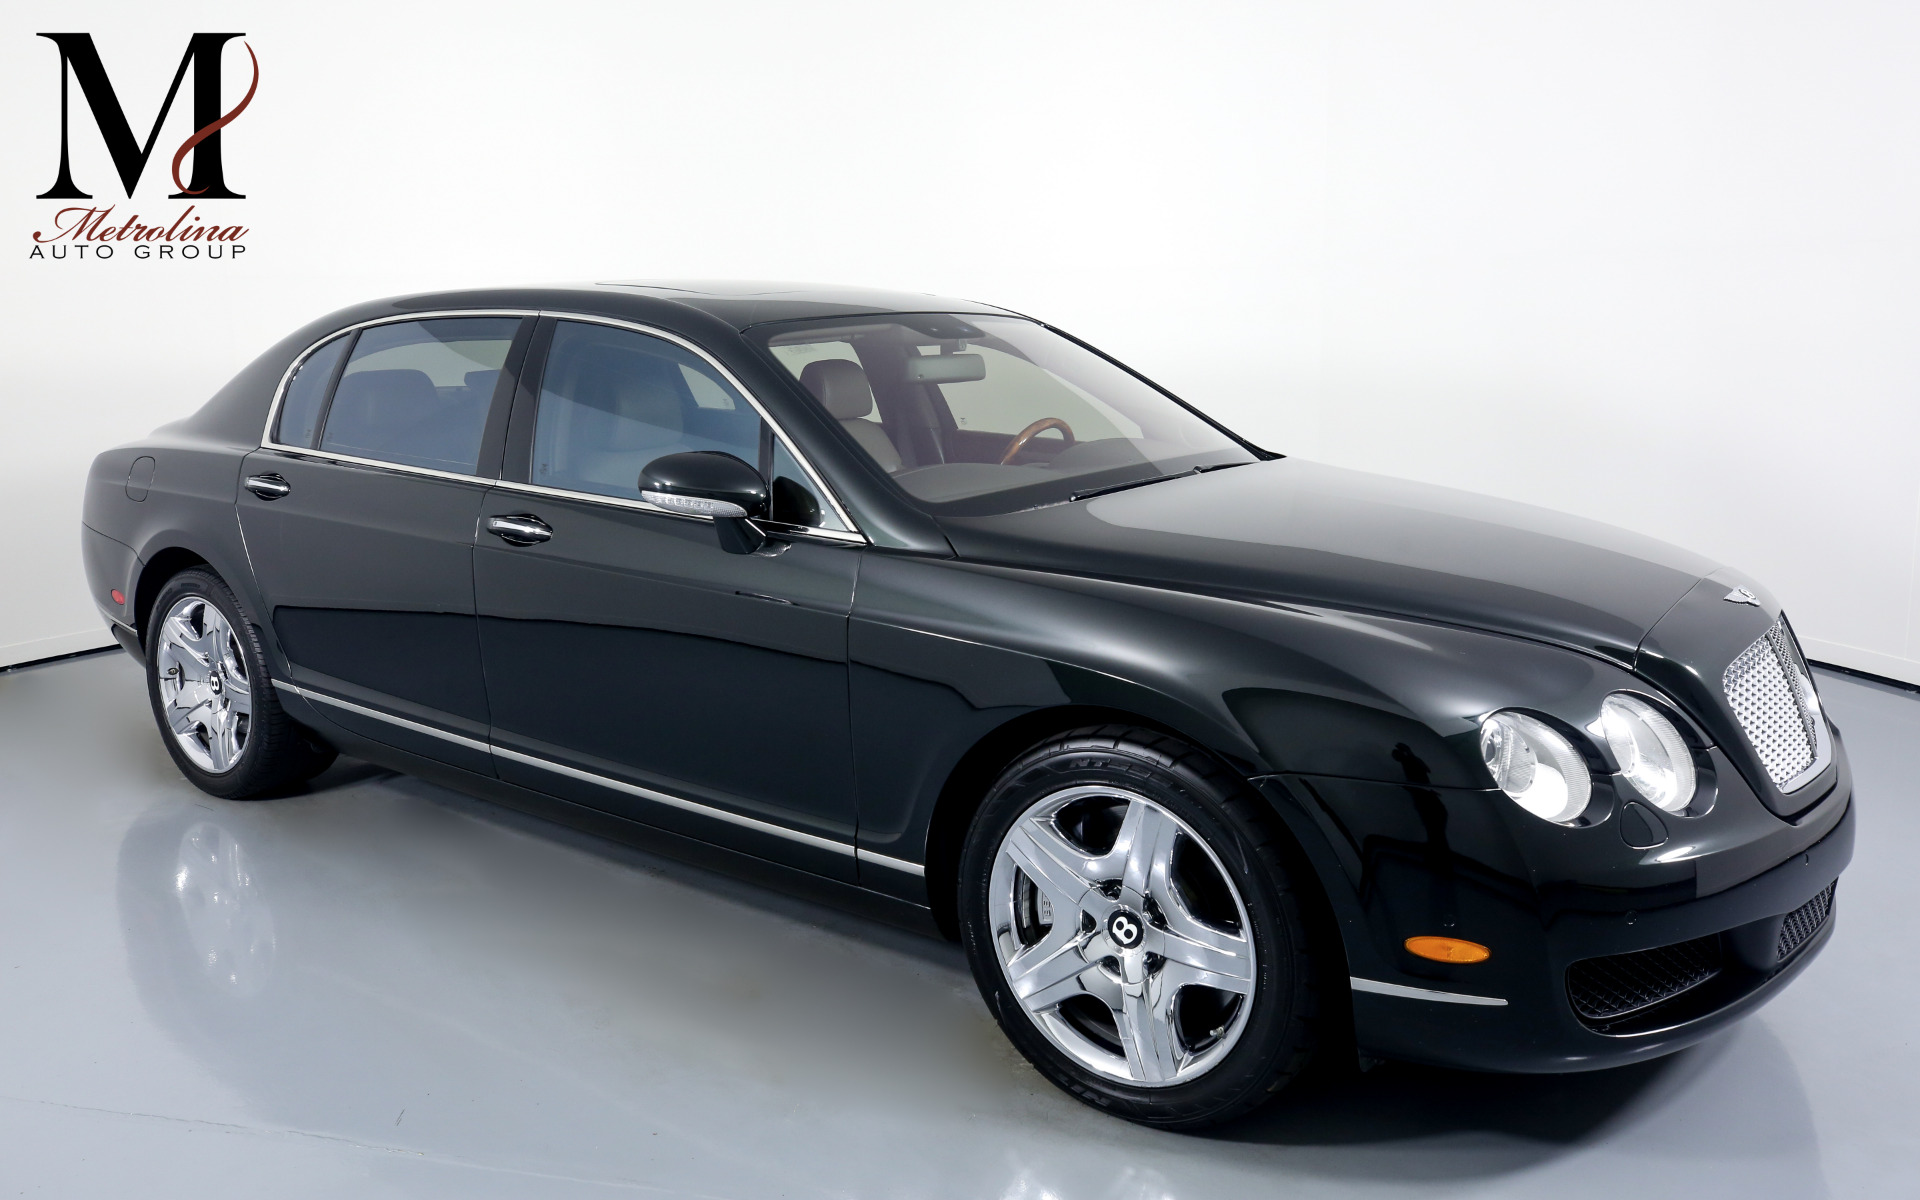 Used 2006 Bentley Continental Flying Spur for sale $37,996 at Metrolina Auto Group in Charlotte NC 28217 - 1